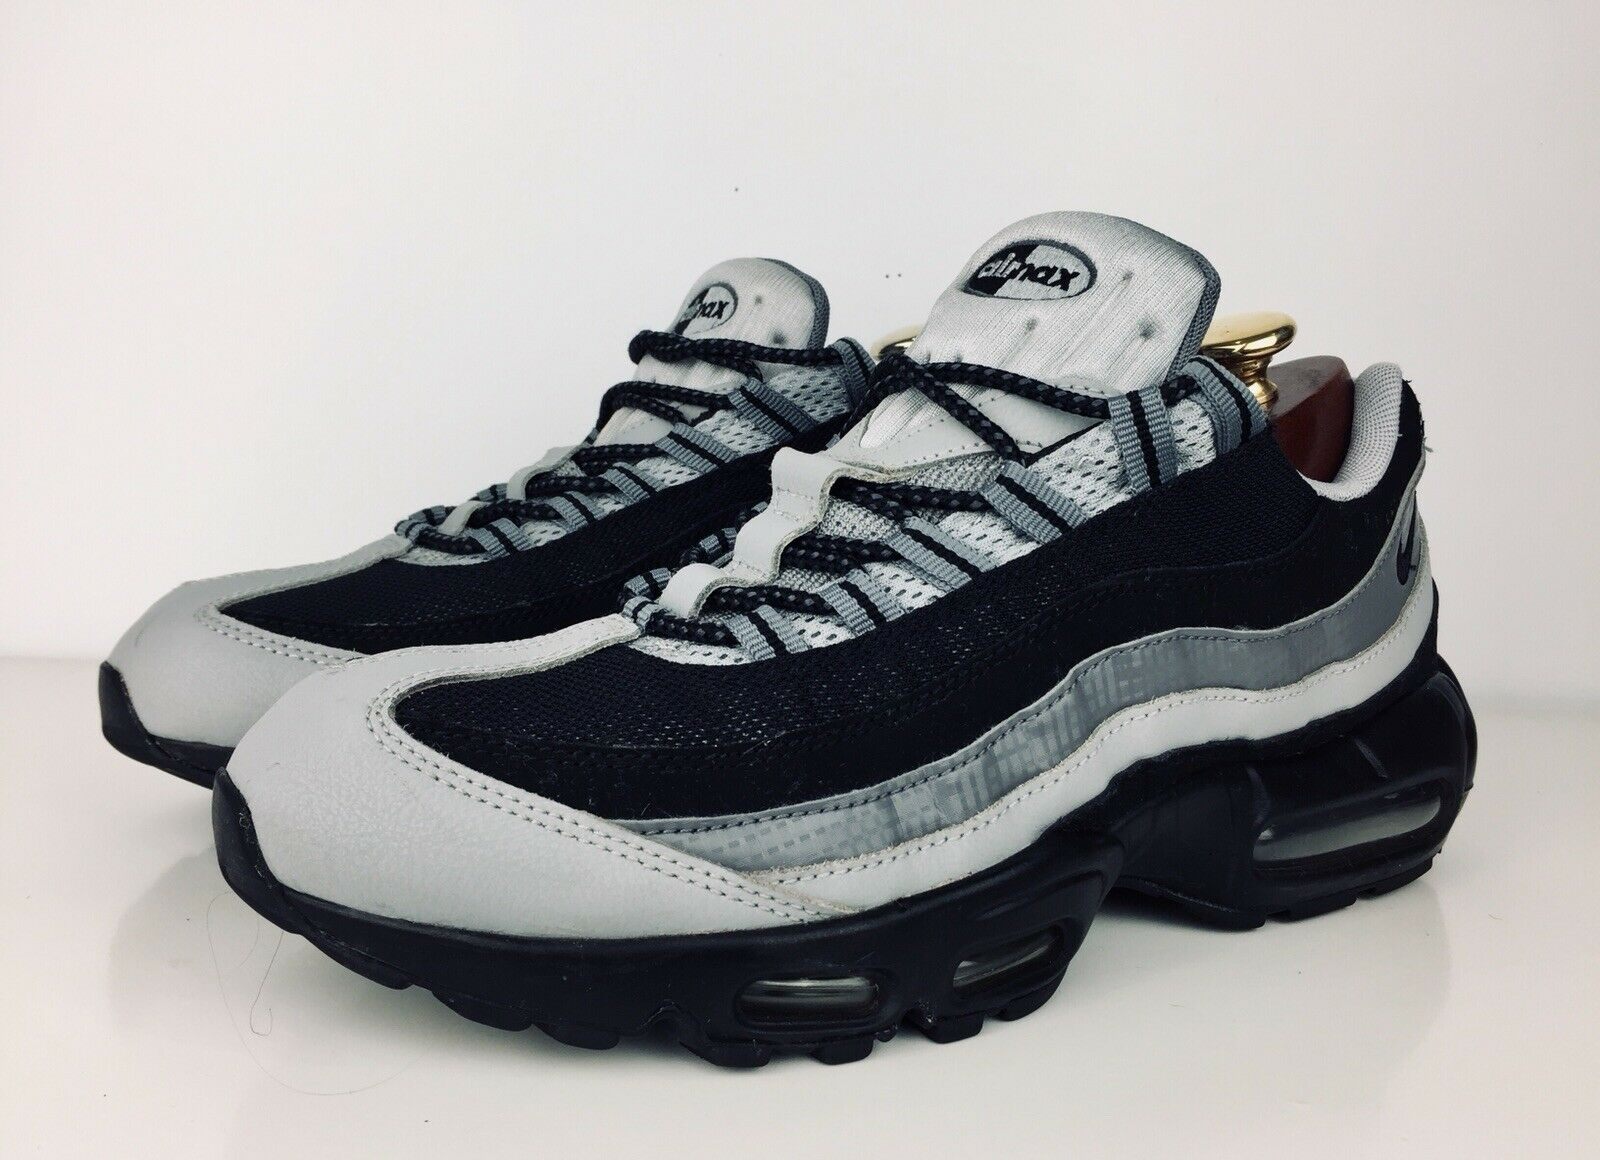 Details about Mens Size 11 Nike Air Max 95 Black Wolf Grey Anthracite 749766 005 .. NICE!